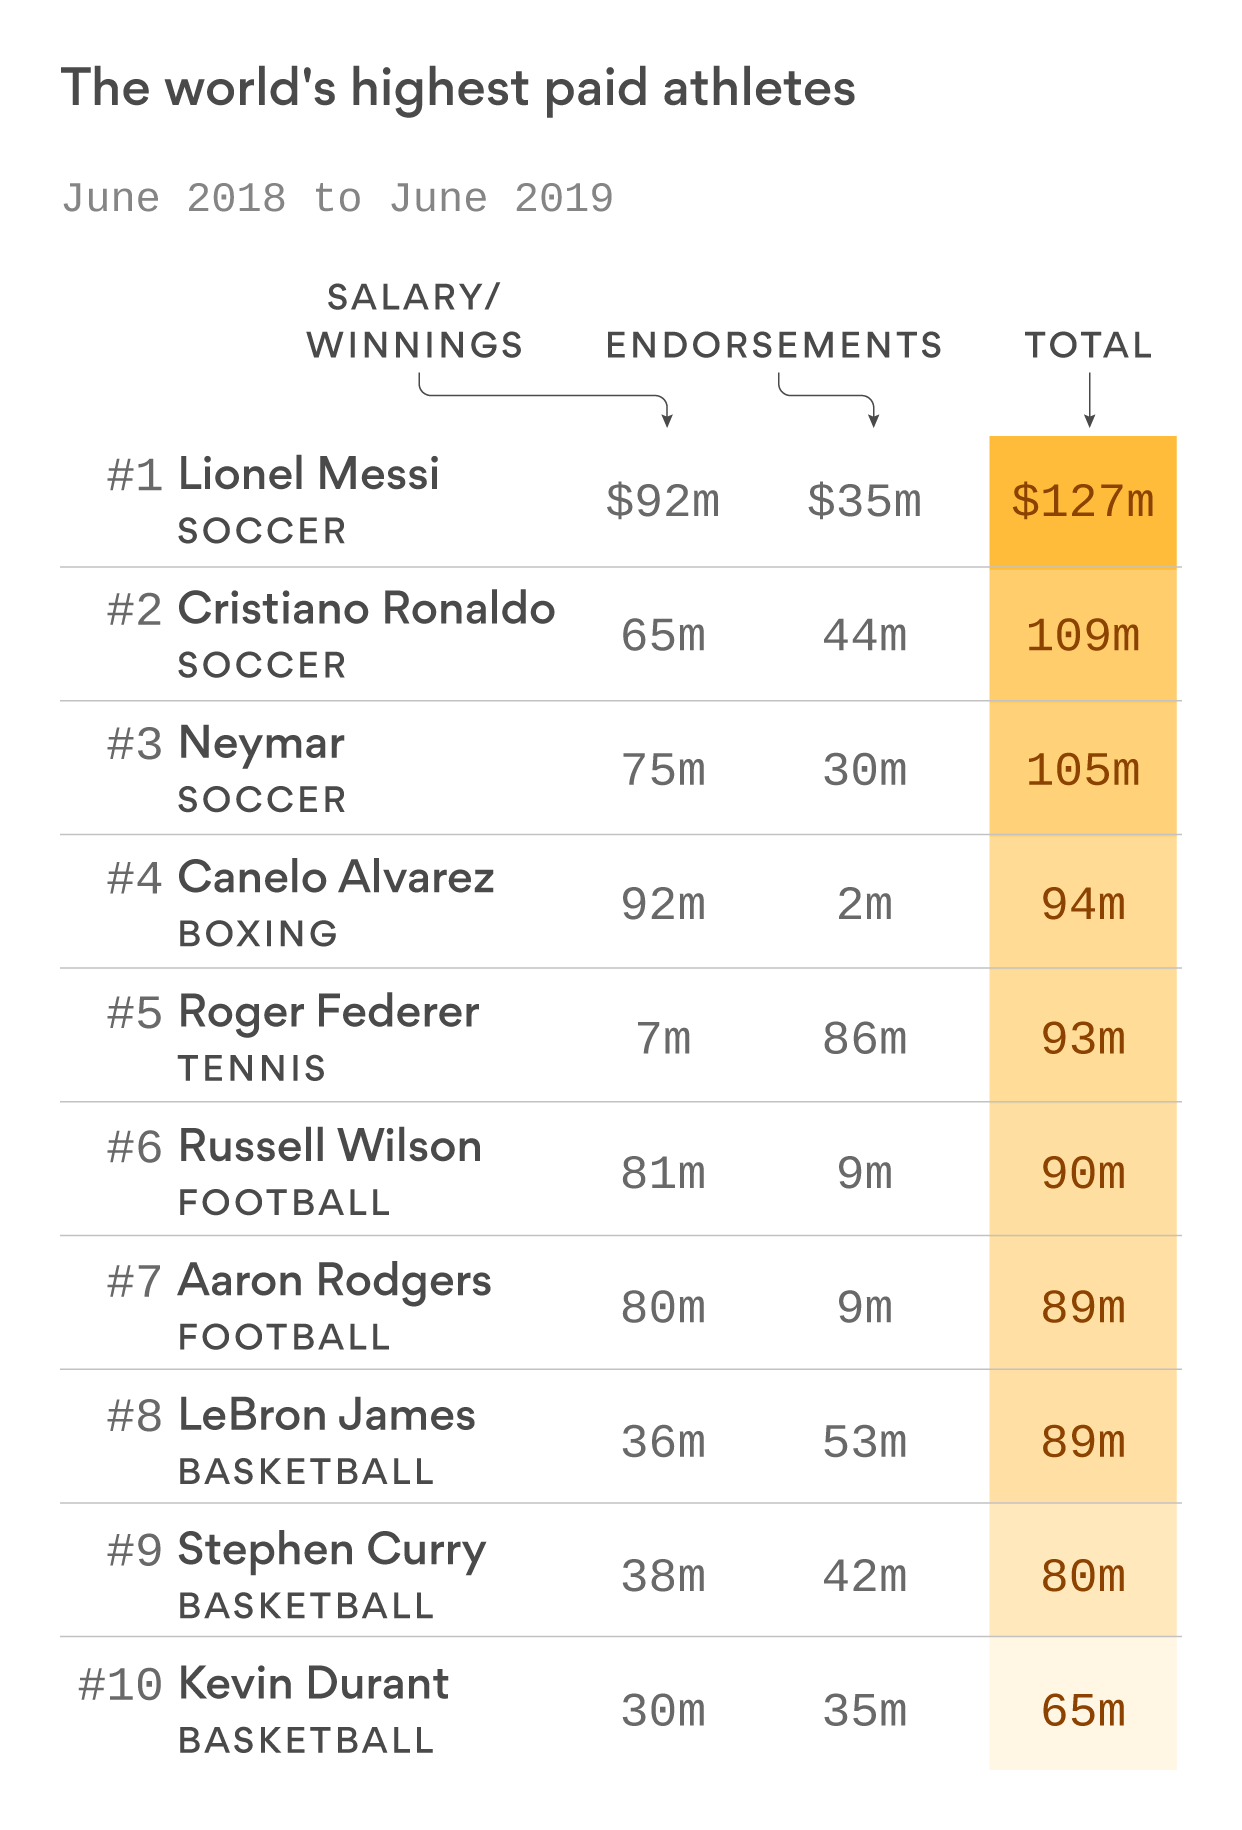 Chart: The world's highest paid athletes